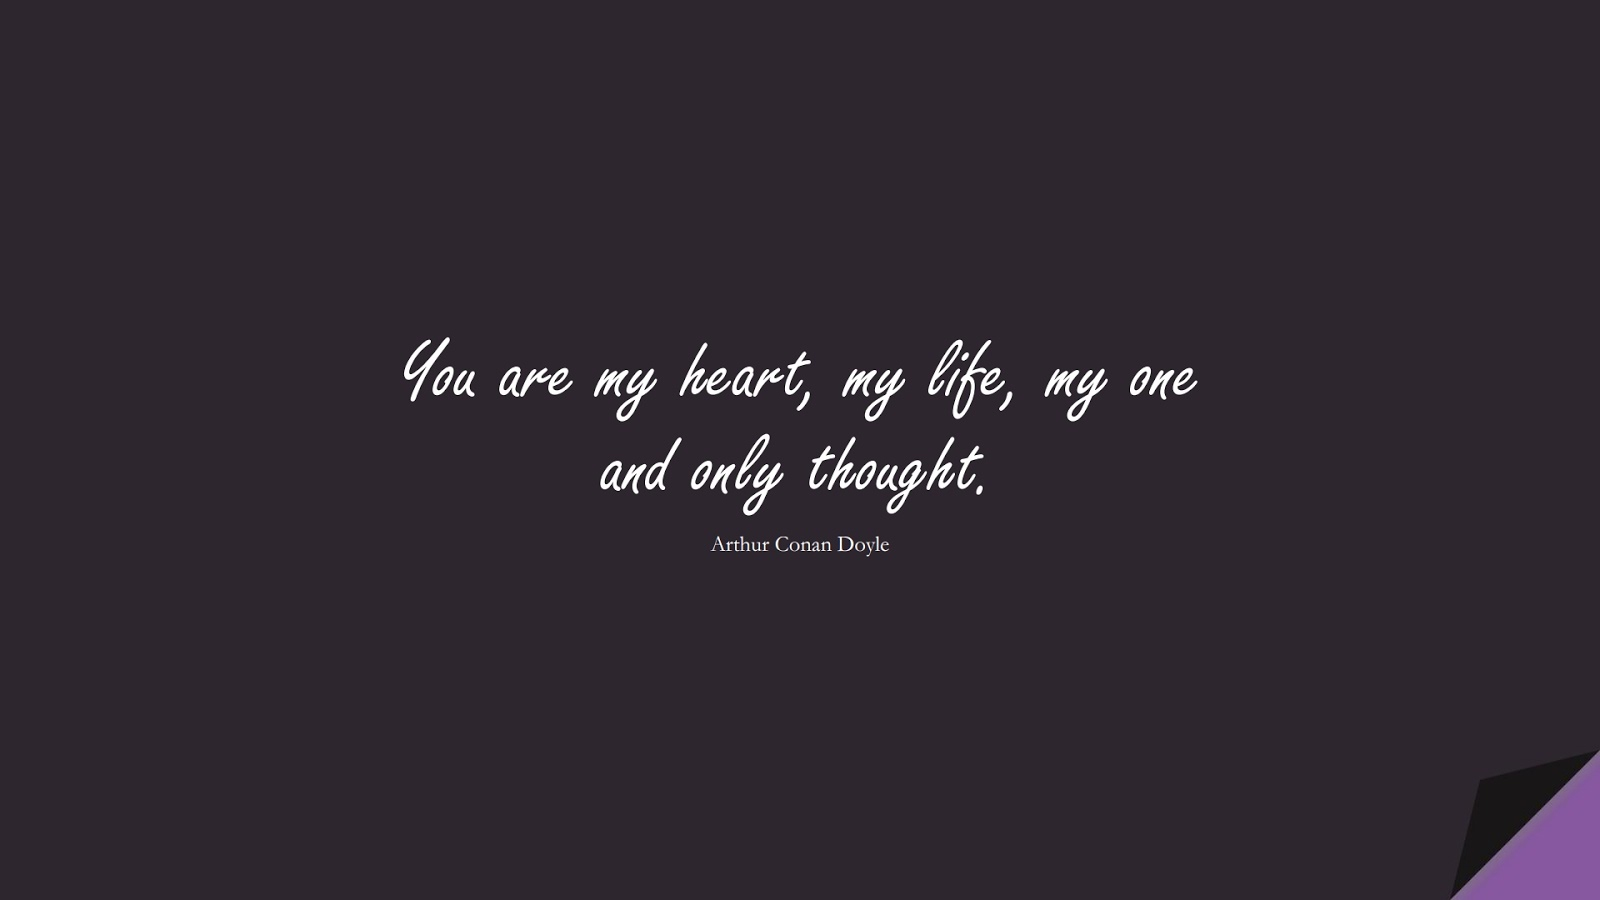 You are my heart, my life, my one and only thought. (Arthur Conan Doyle);  #LoveQuotes